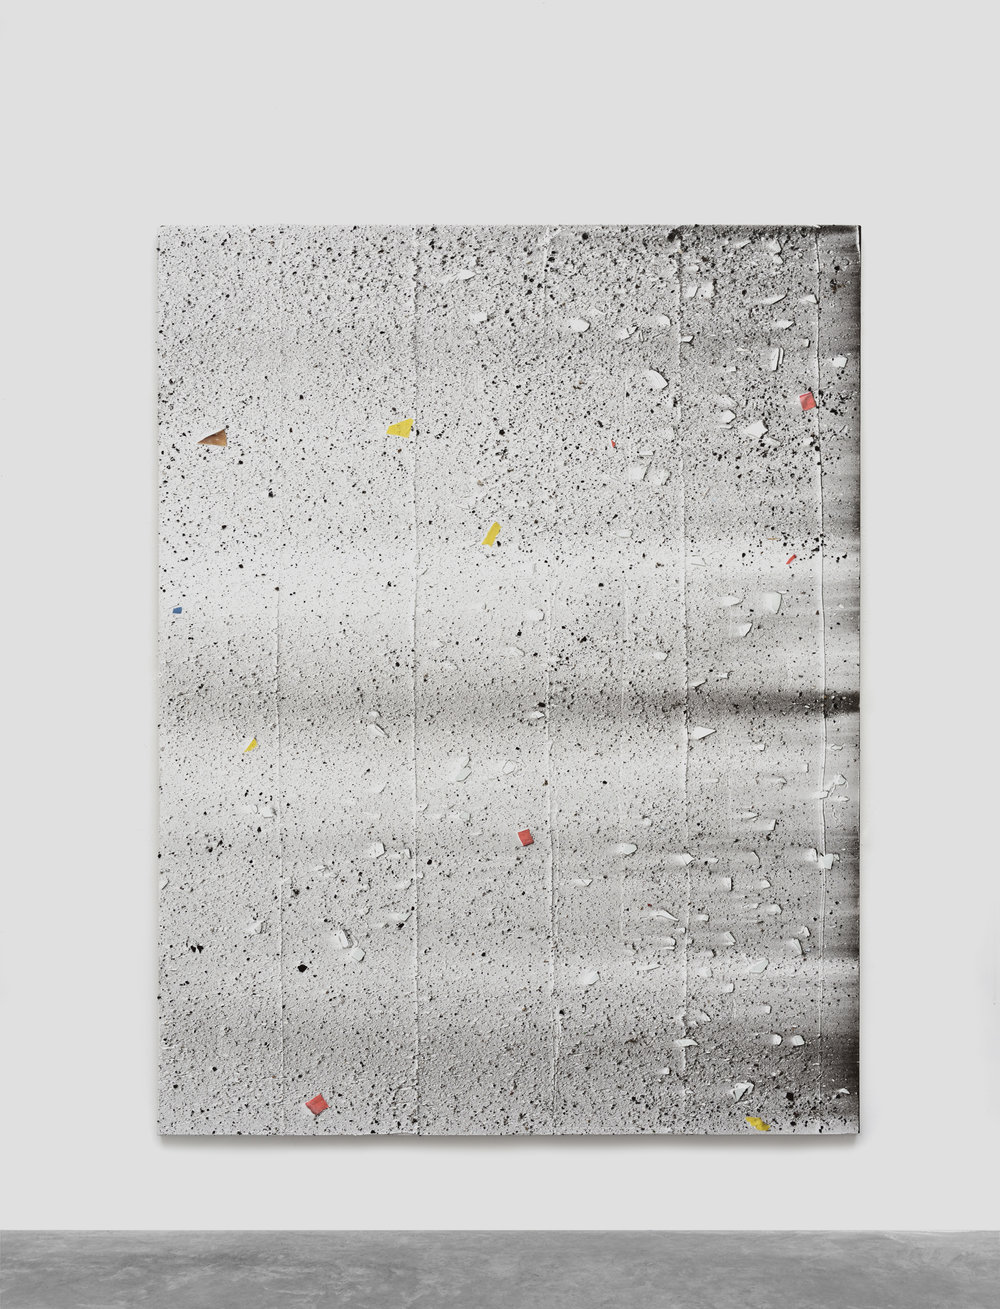 Untitled, 2016 mixed media on canvas 196 x 151 cm - 77 1/8 x 59 1/2 inches